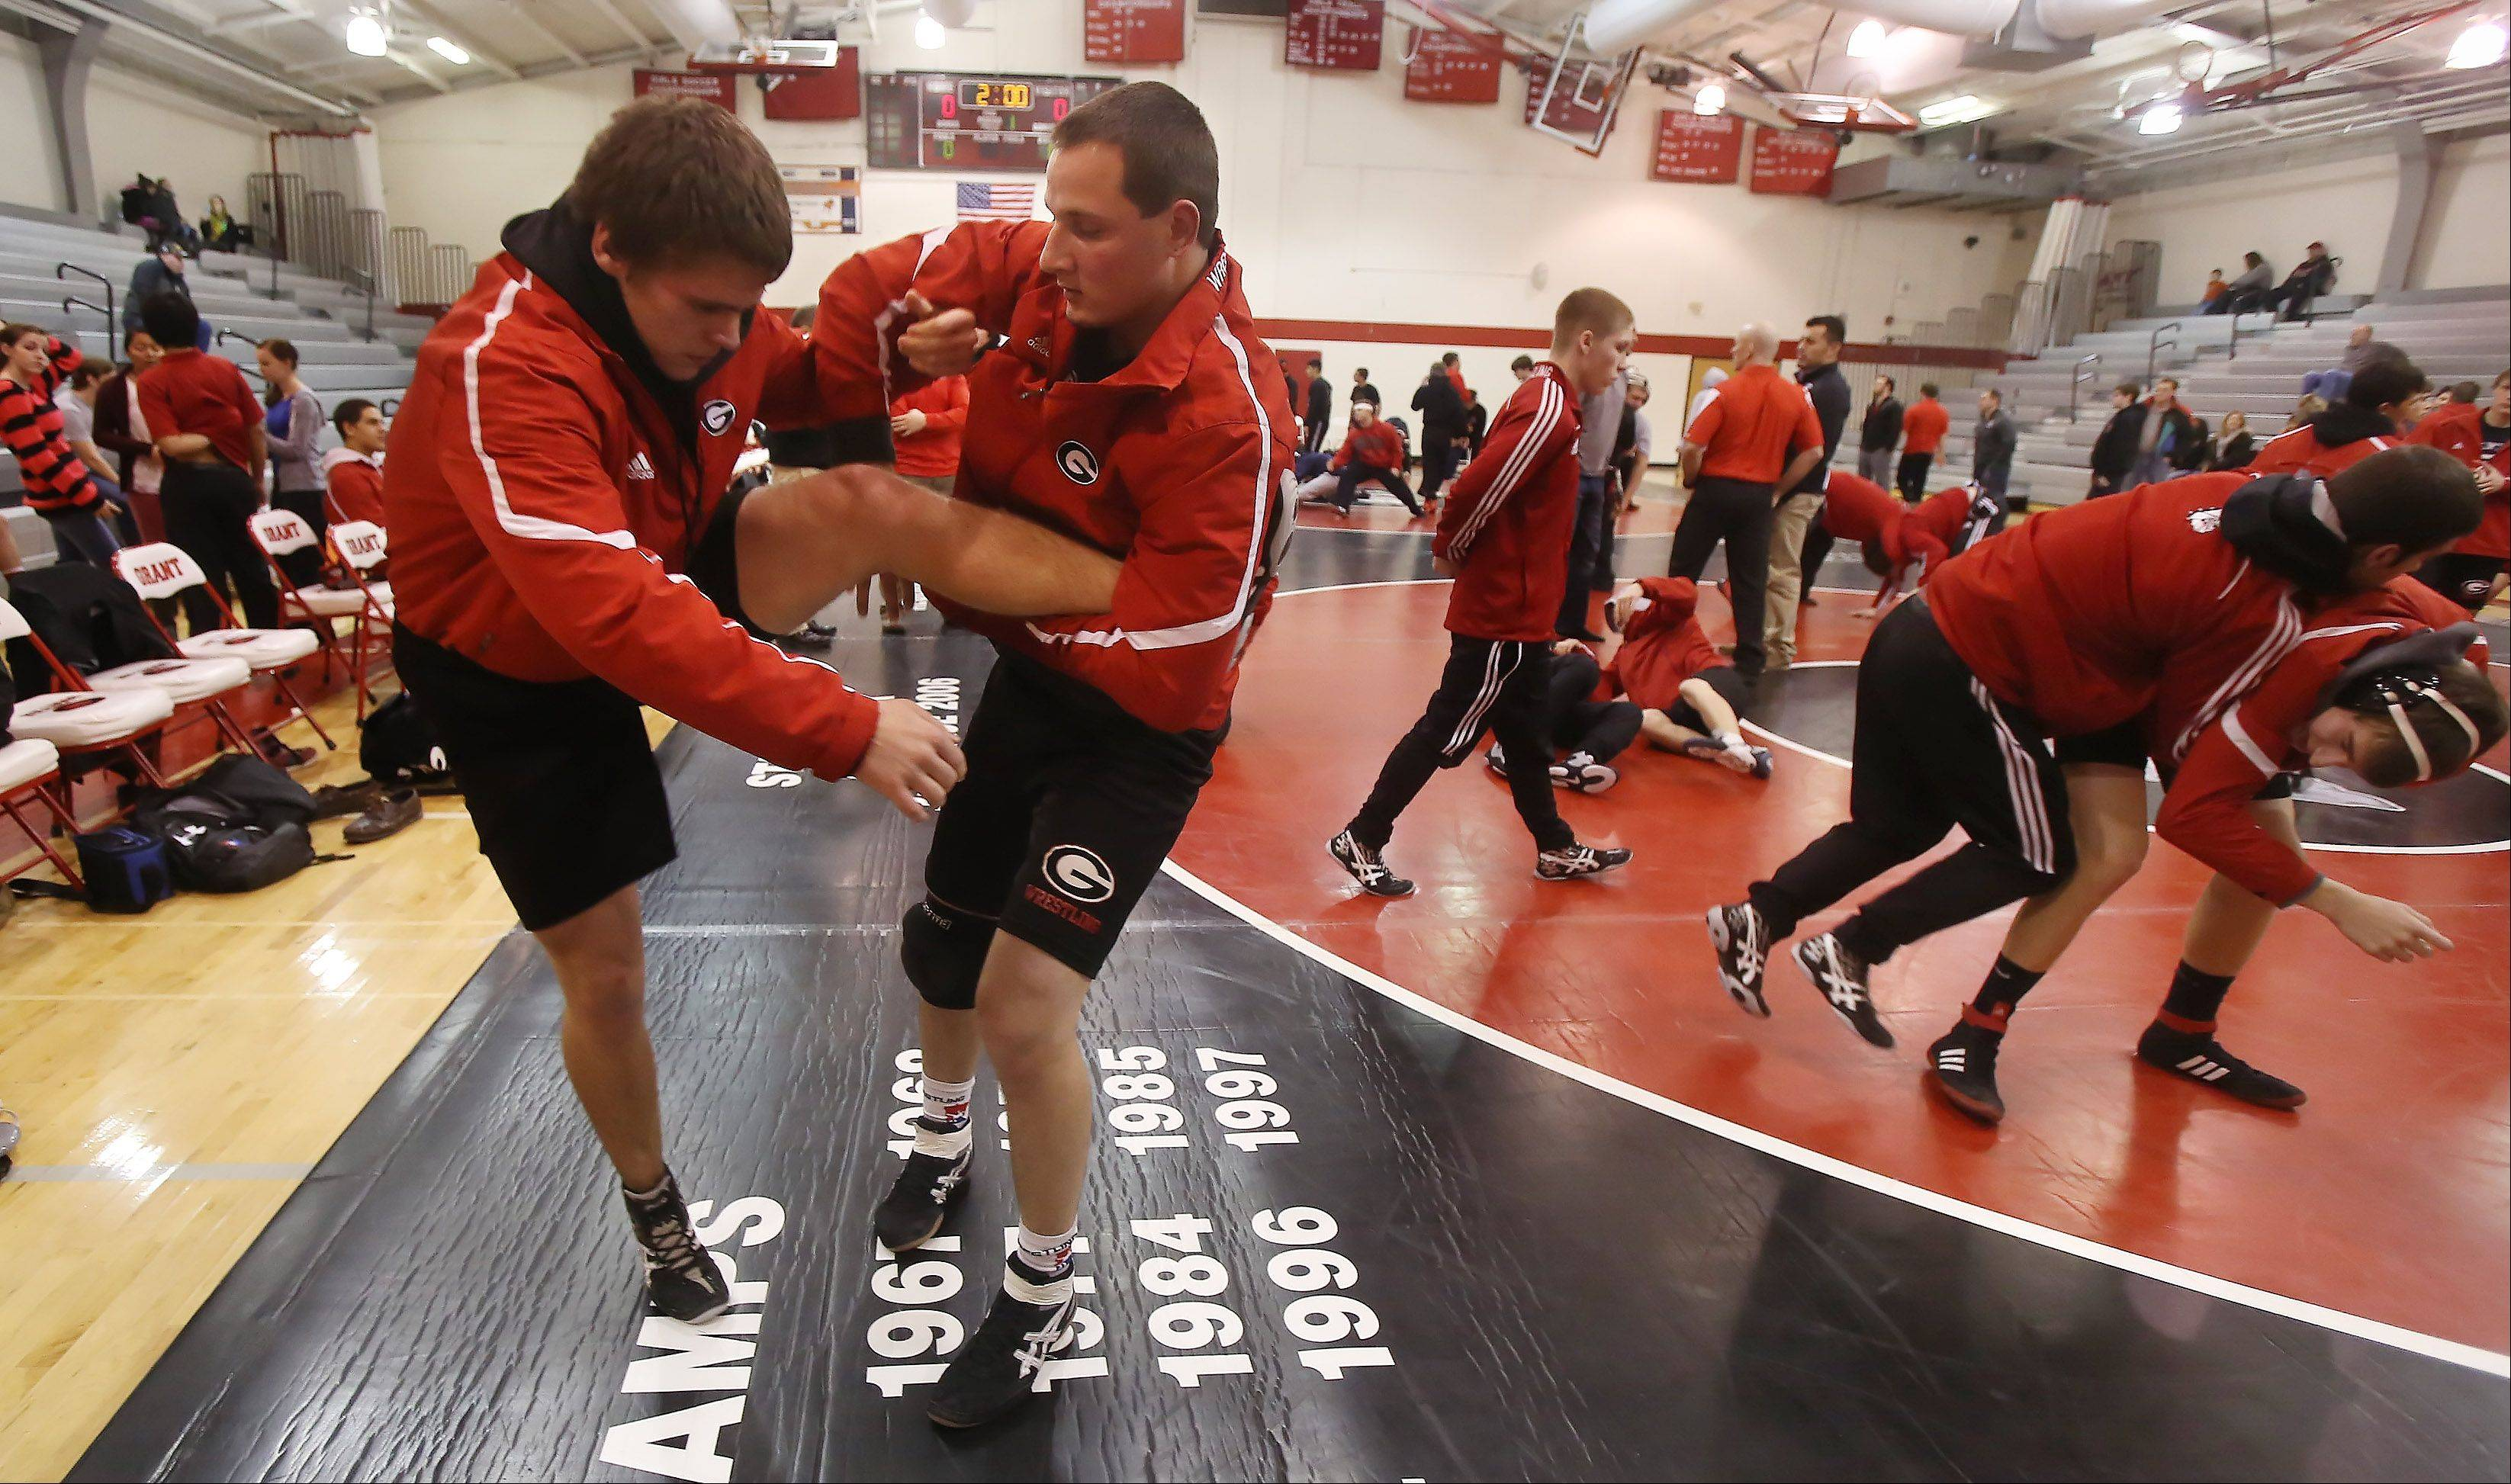 Grant Community High School wrestlers Steve Herrington, left, and Anthony Mostachio warm up before a recent home meet. The annual school report card now lists sports and other activities to paint a more complete picture for parents, state education officials say.